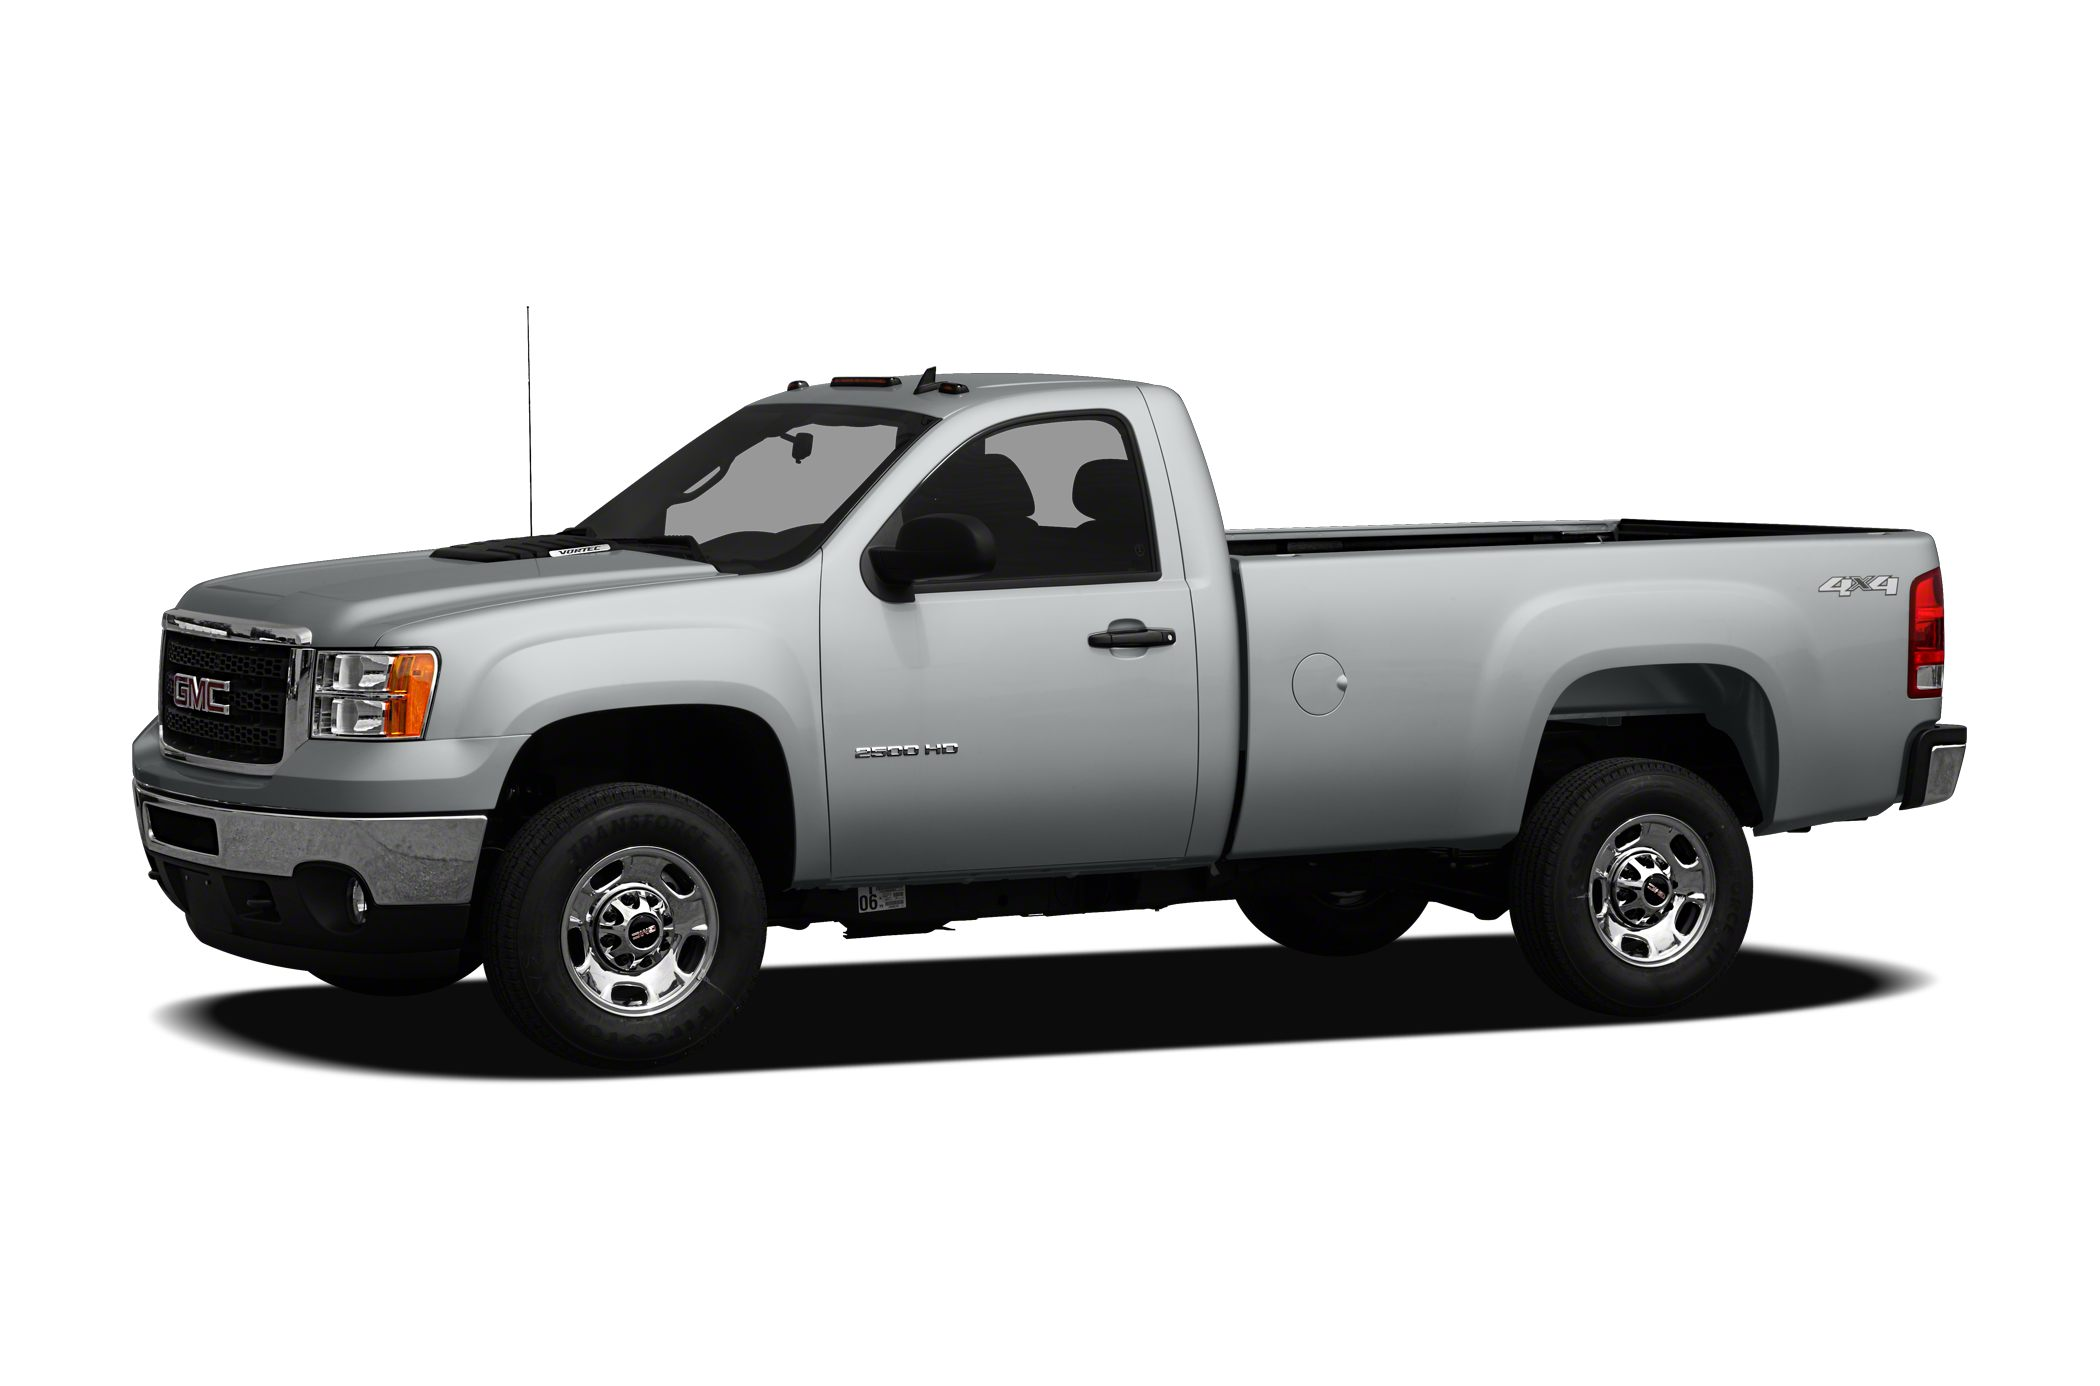 sale new pickup photo for ca chico cab work trucks double in gmc sierra